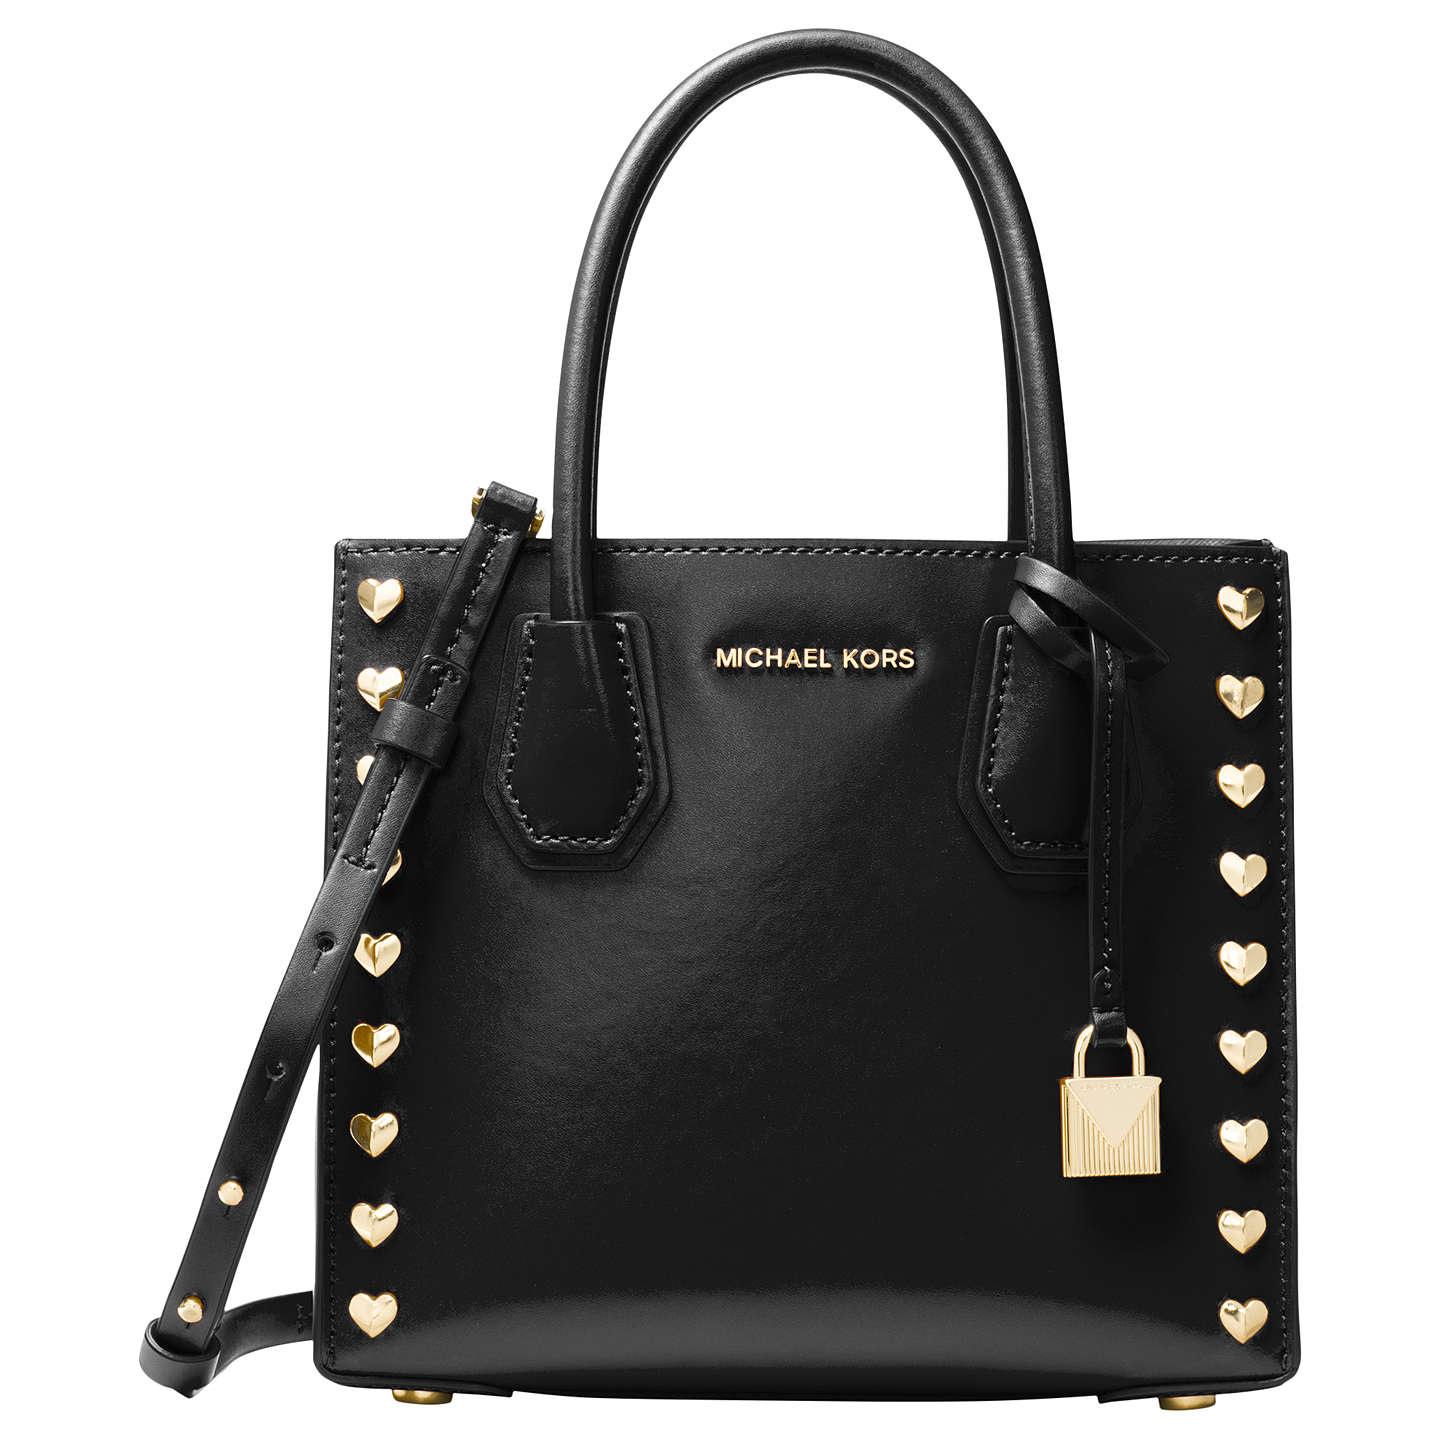 Michael Kors Mercer Leather Heart Studded Tote Bag Black Online At Johnlewis